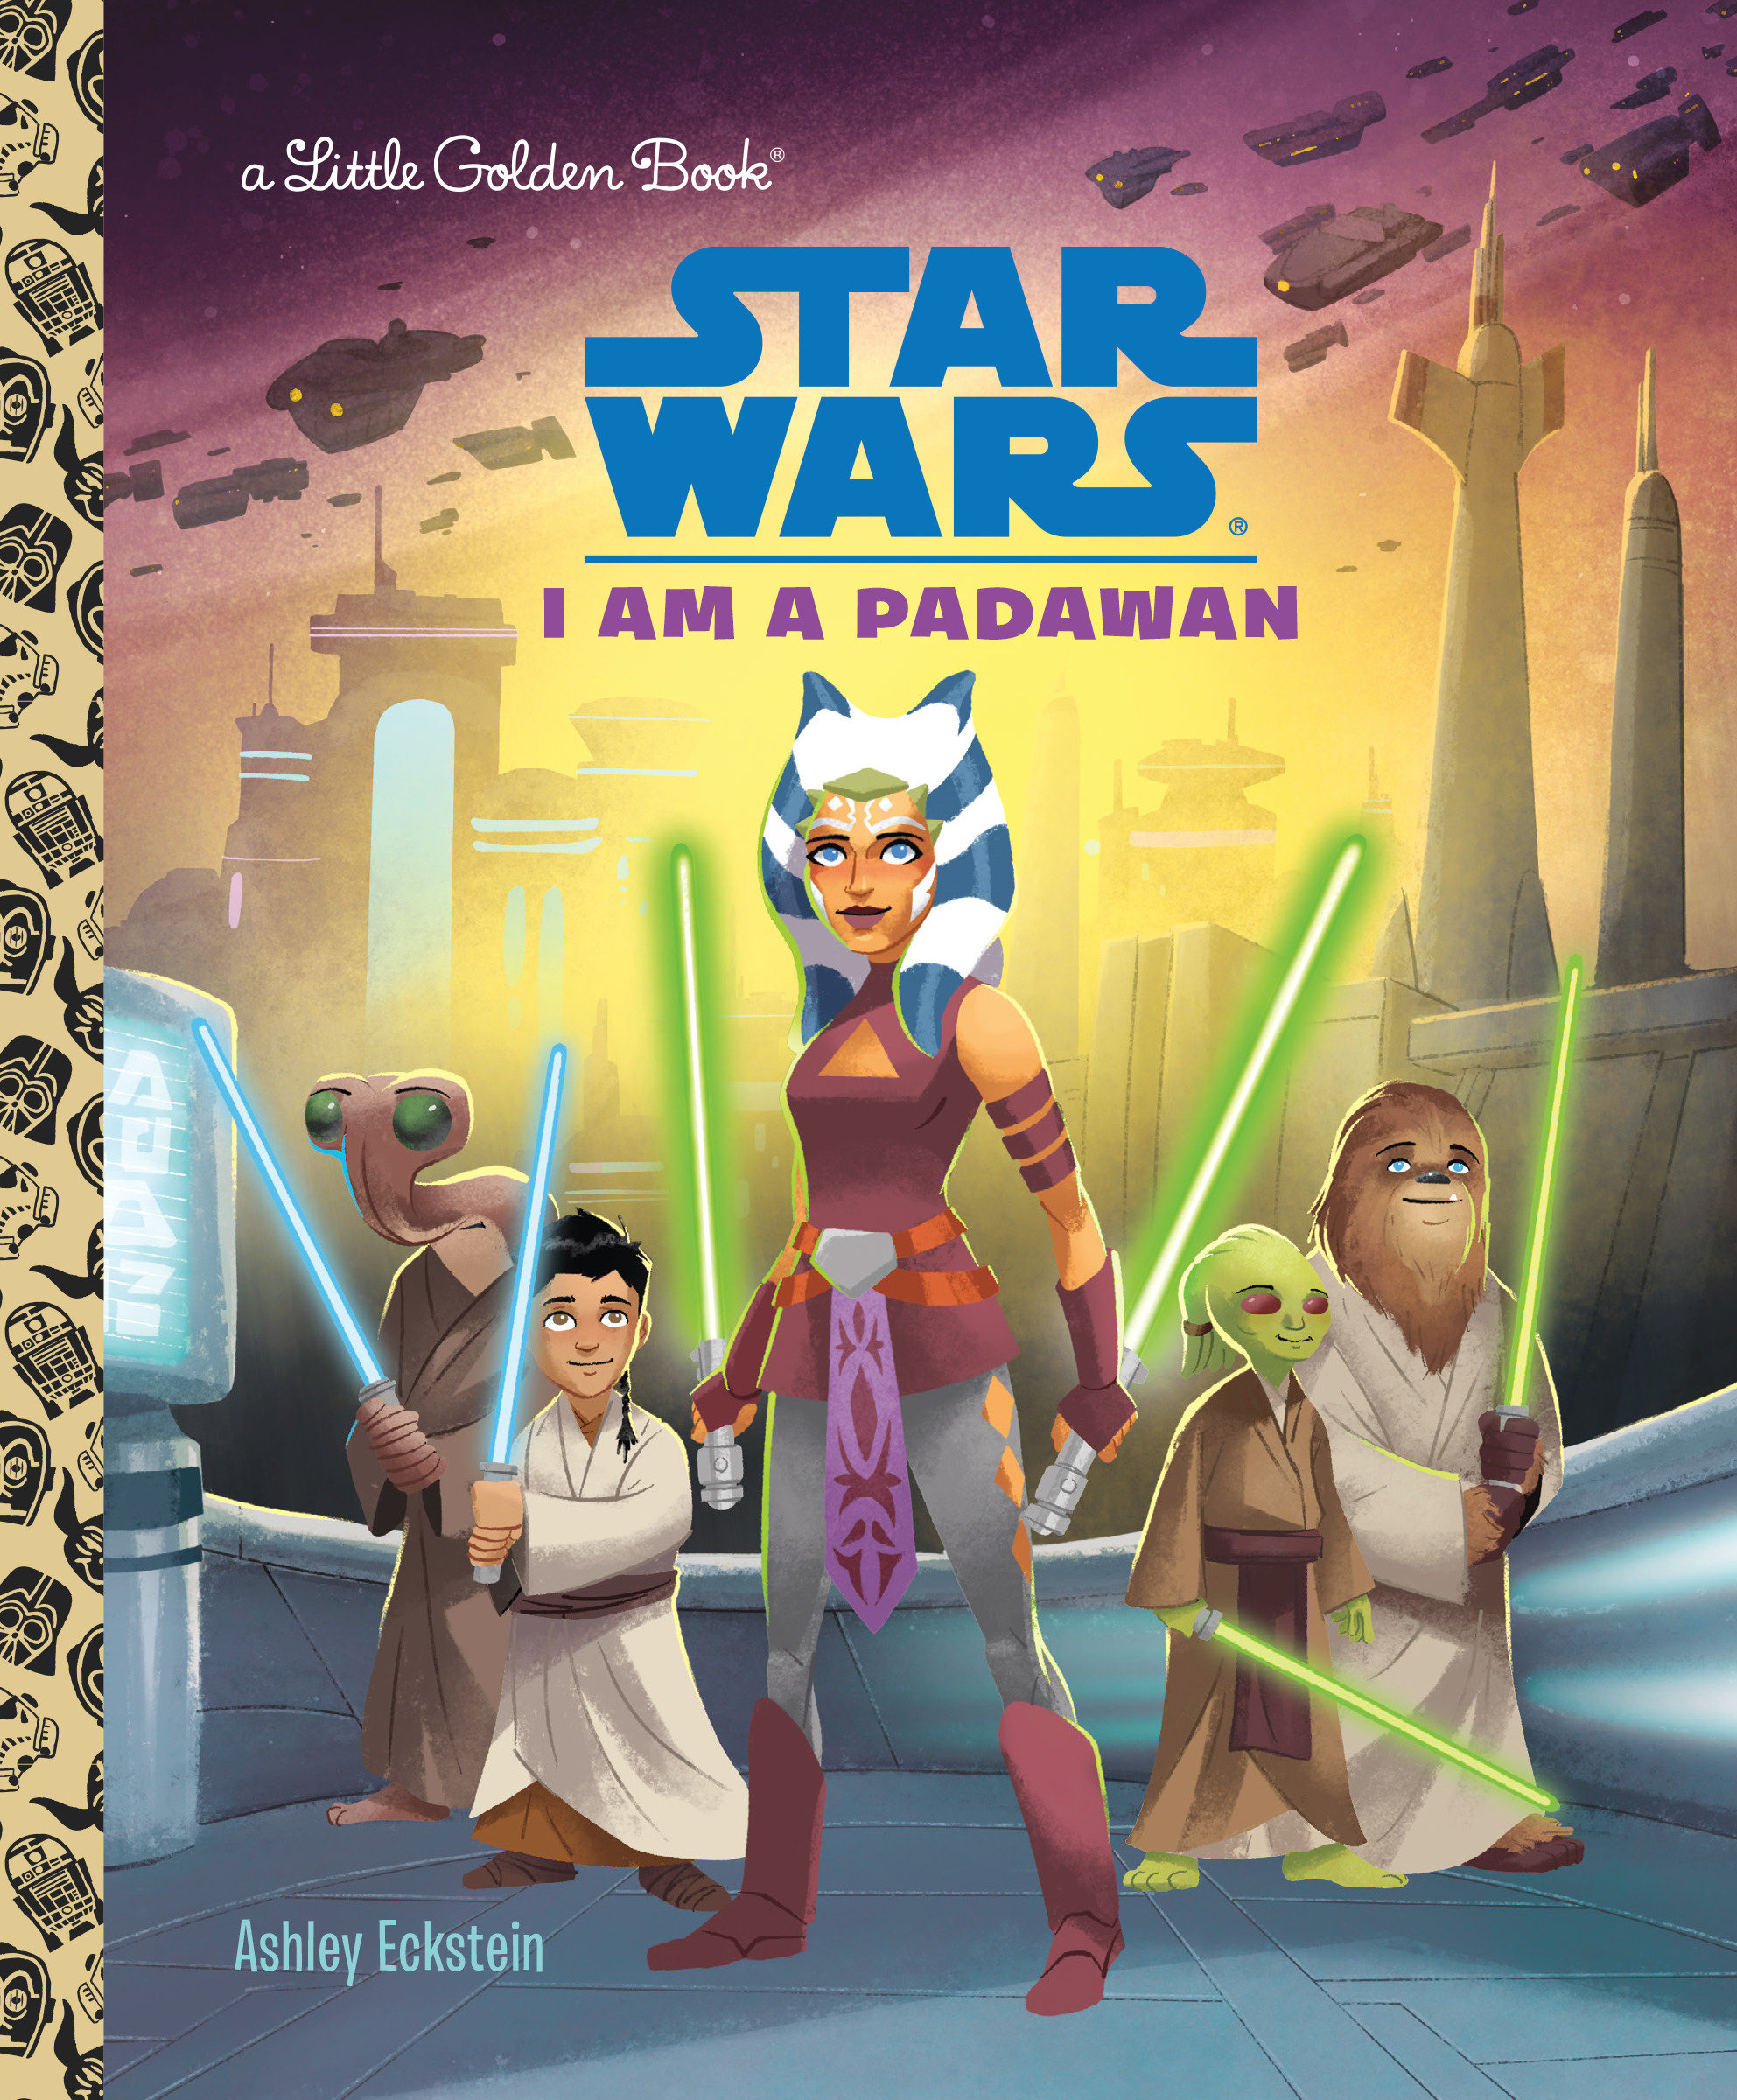 I Am a Padawan - A Little Golden Book (07.04.2020)